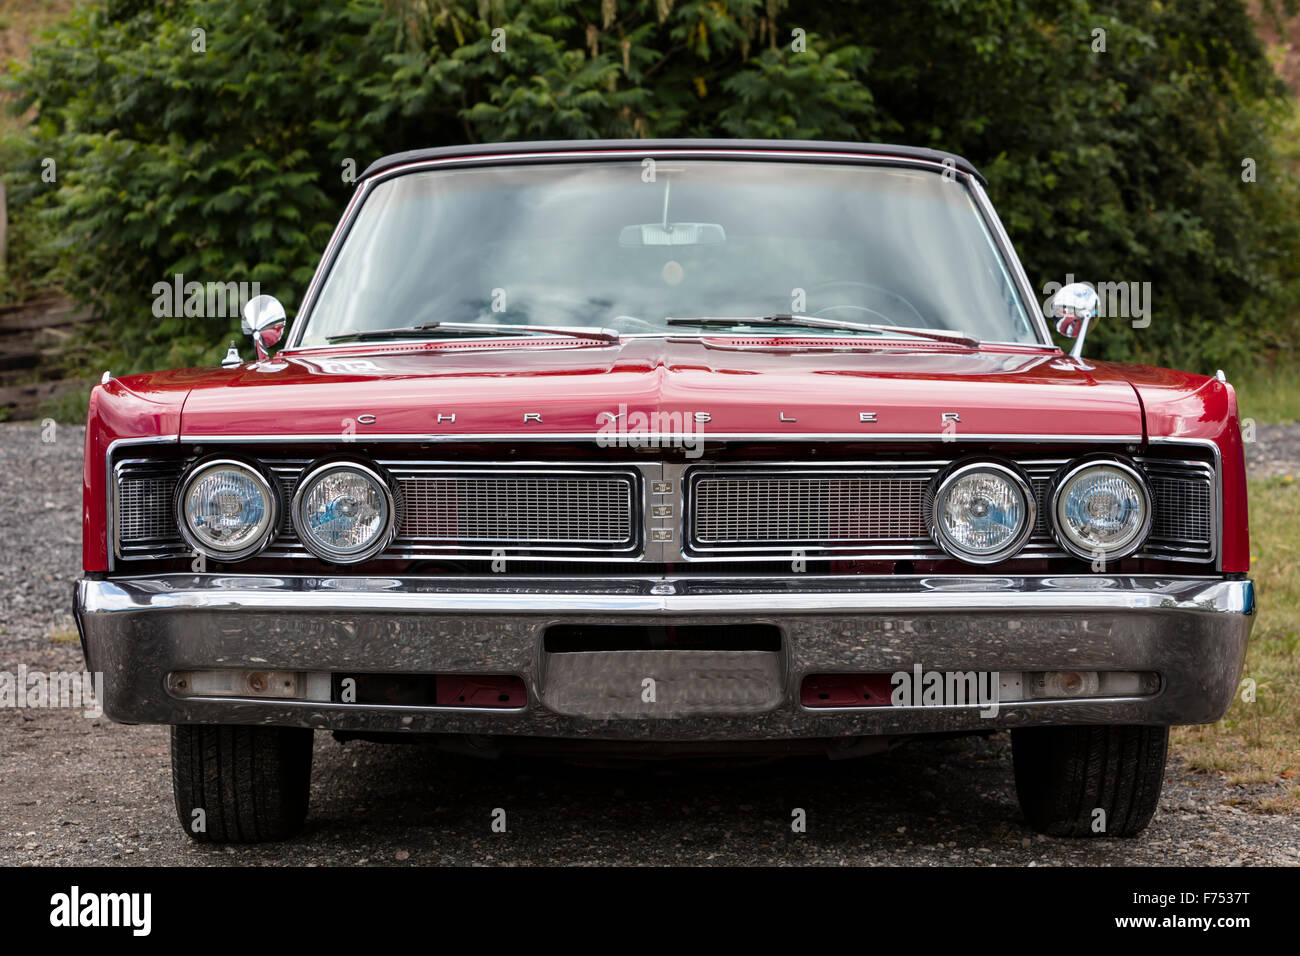 Front Detail Of A Chrysler Vintage Car Stock Photo 90466764 Alamy